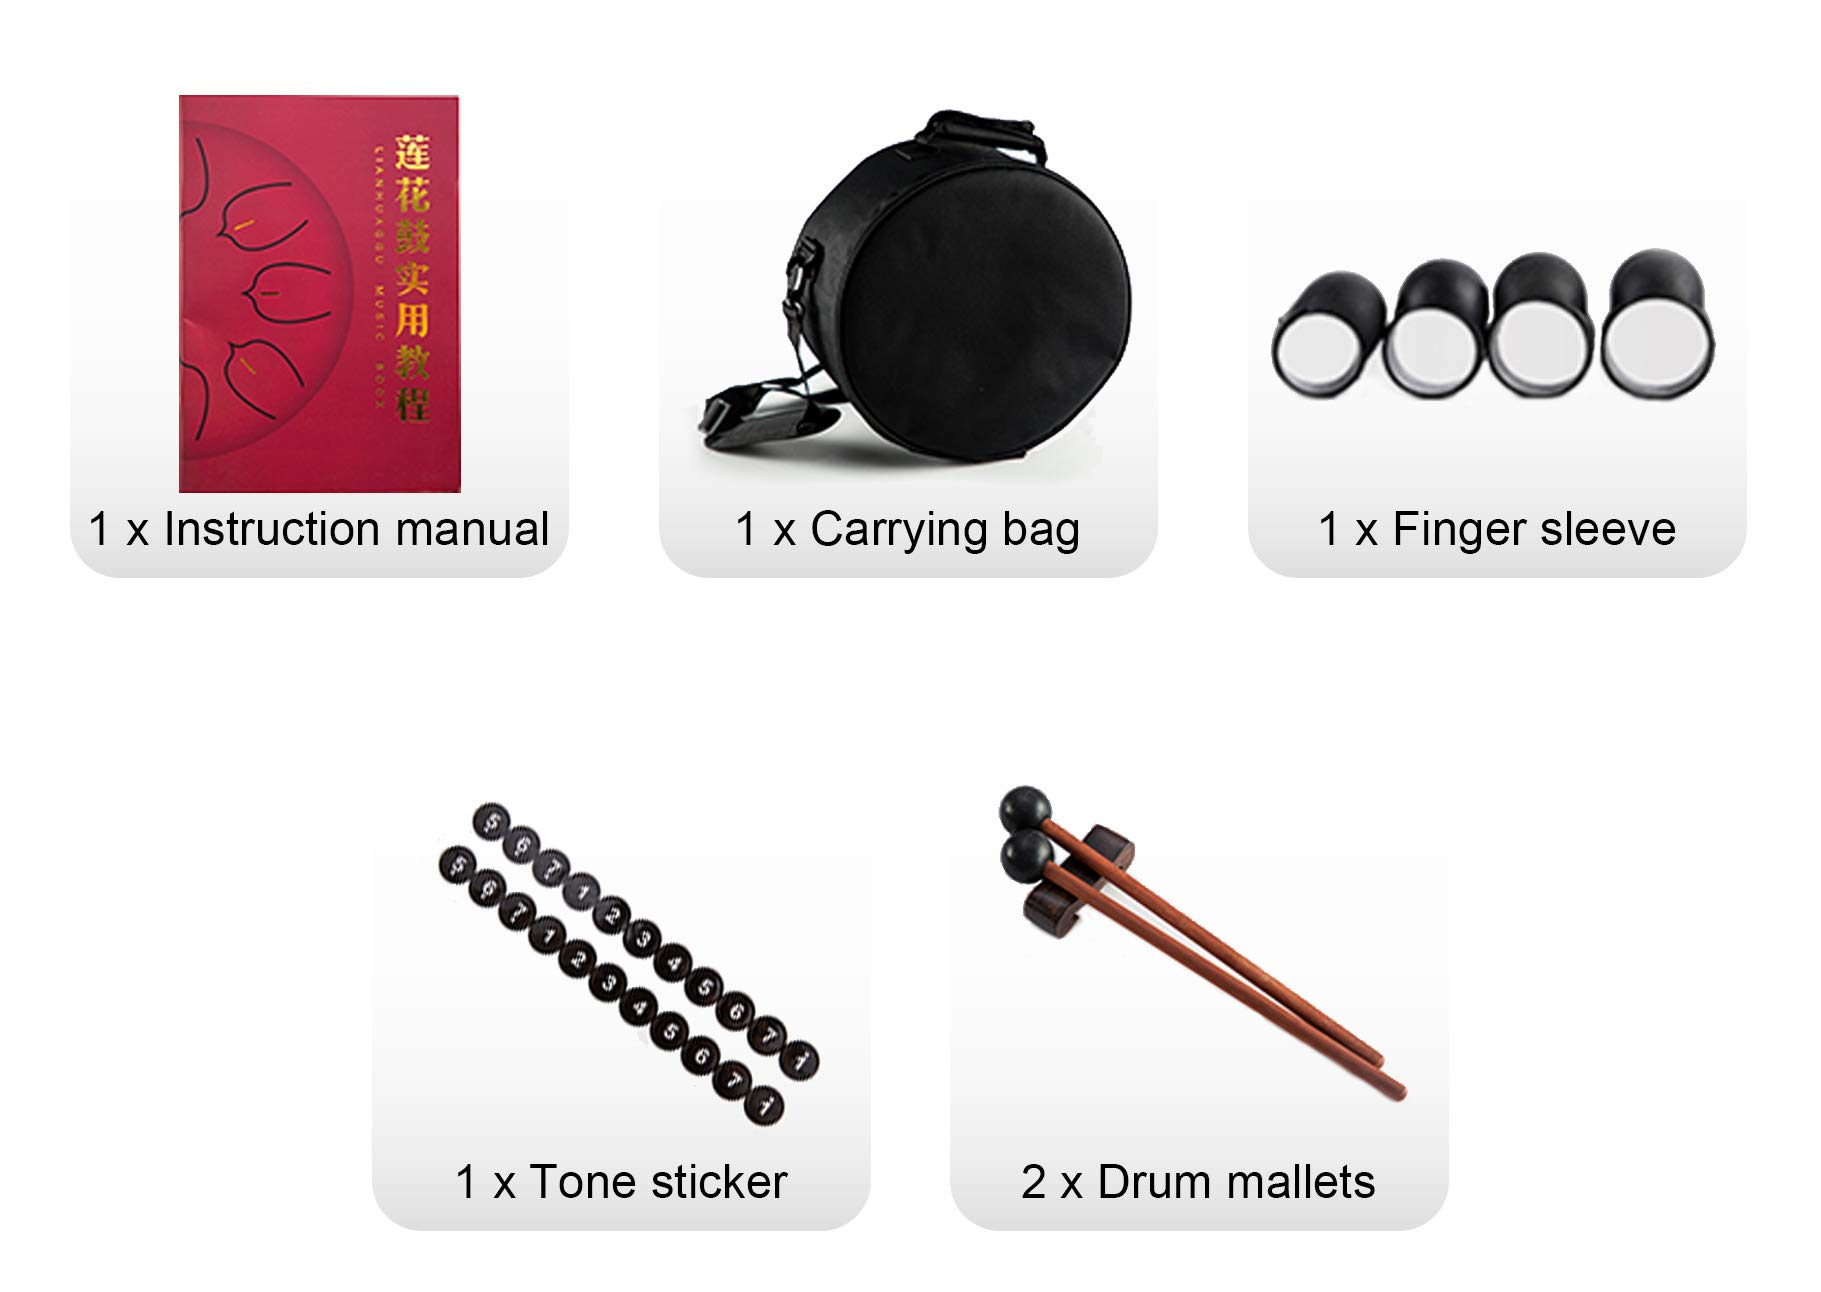 10 Inch 11 Notes Steel Tongue Drum Highest Quality D Major Percussion Hang Drum Instrument Padded Travel Bag and Mallets Included Yoga Meditation Music Therapy Lotus Gold by KELEODY (Image #6)